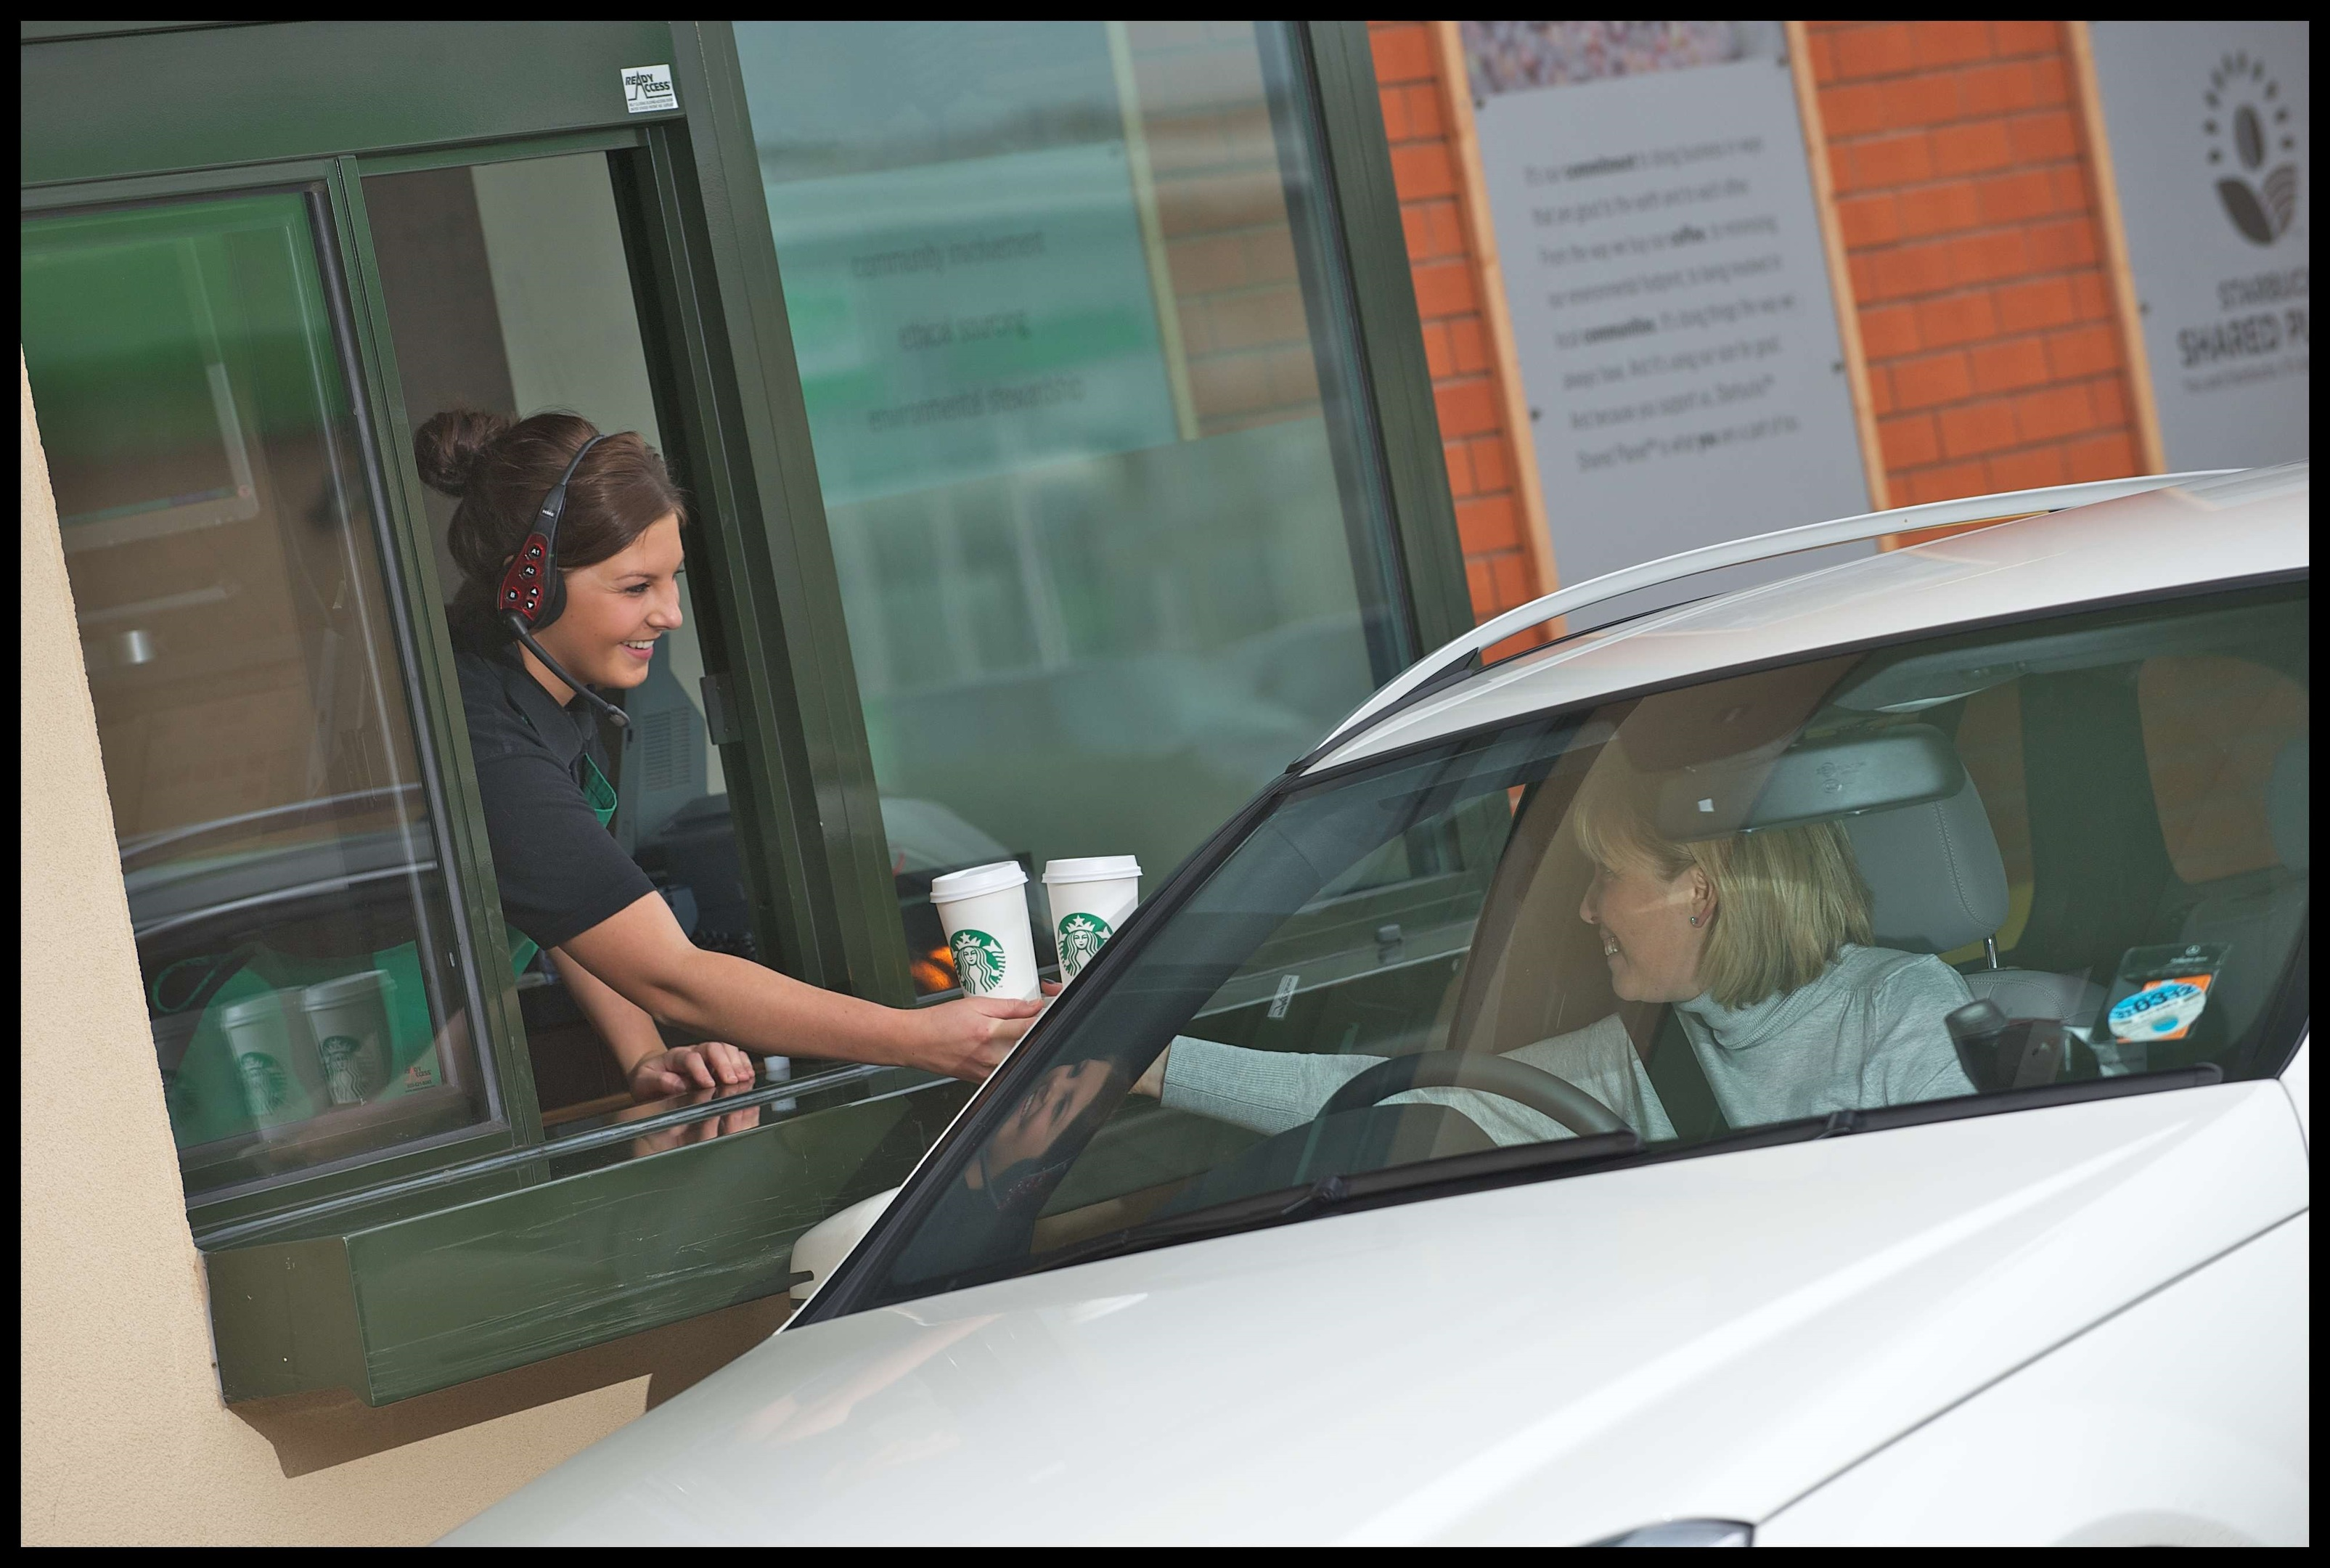 Plans for a drive-thru Starbucks have been unveiled.